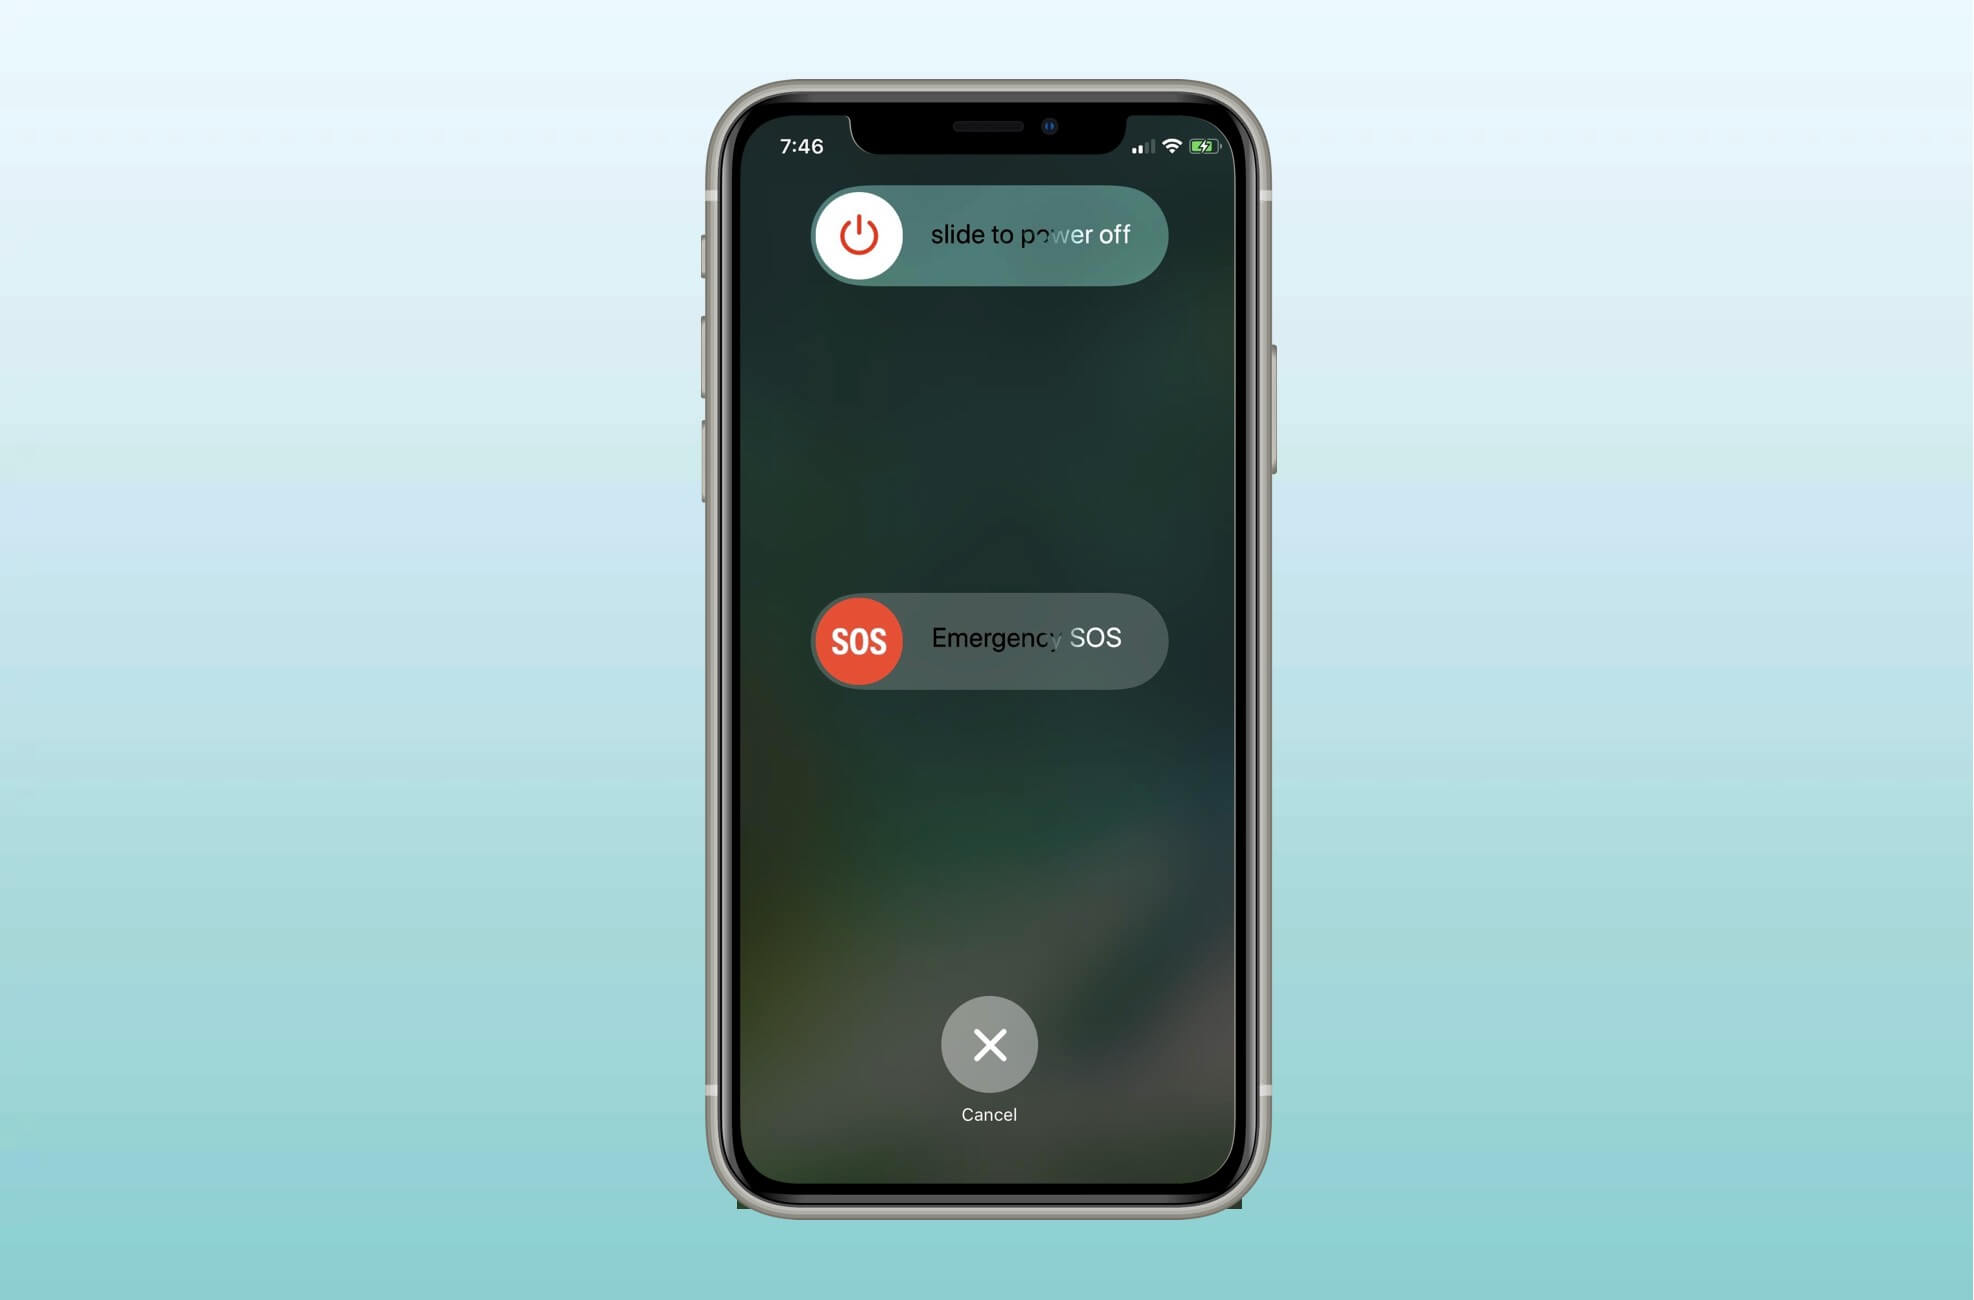 Drag the slider to Turn Off iPhone 11